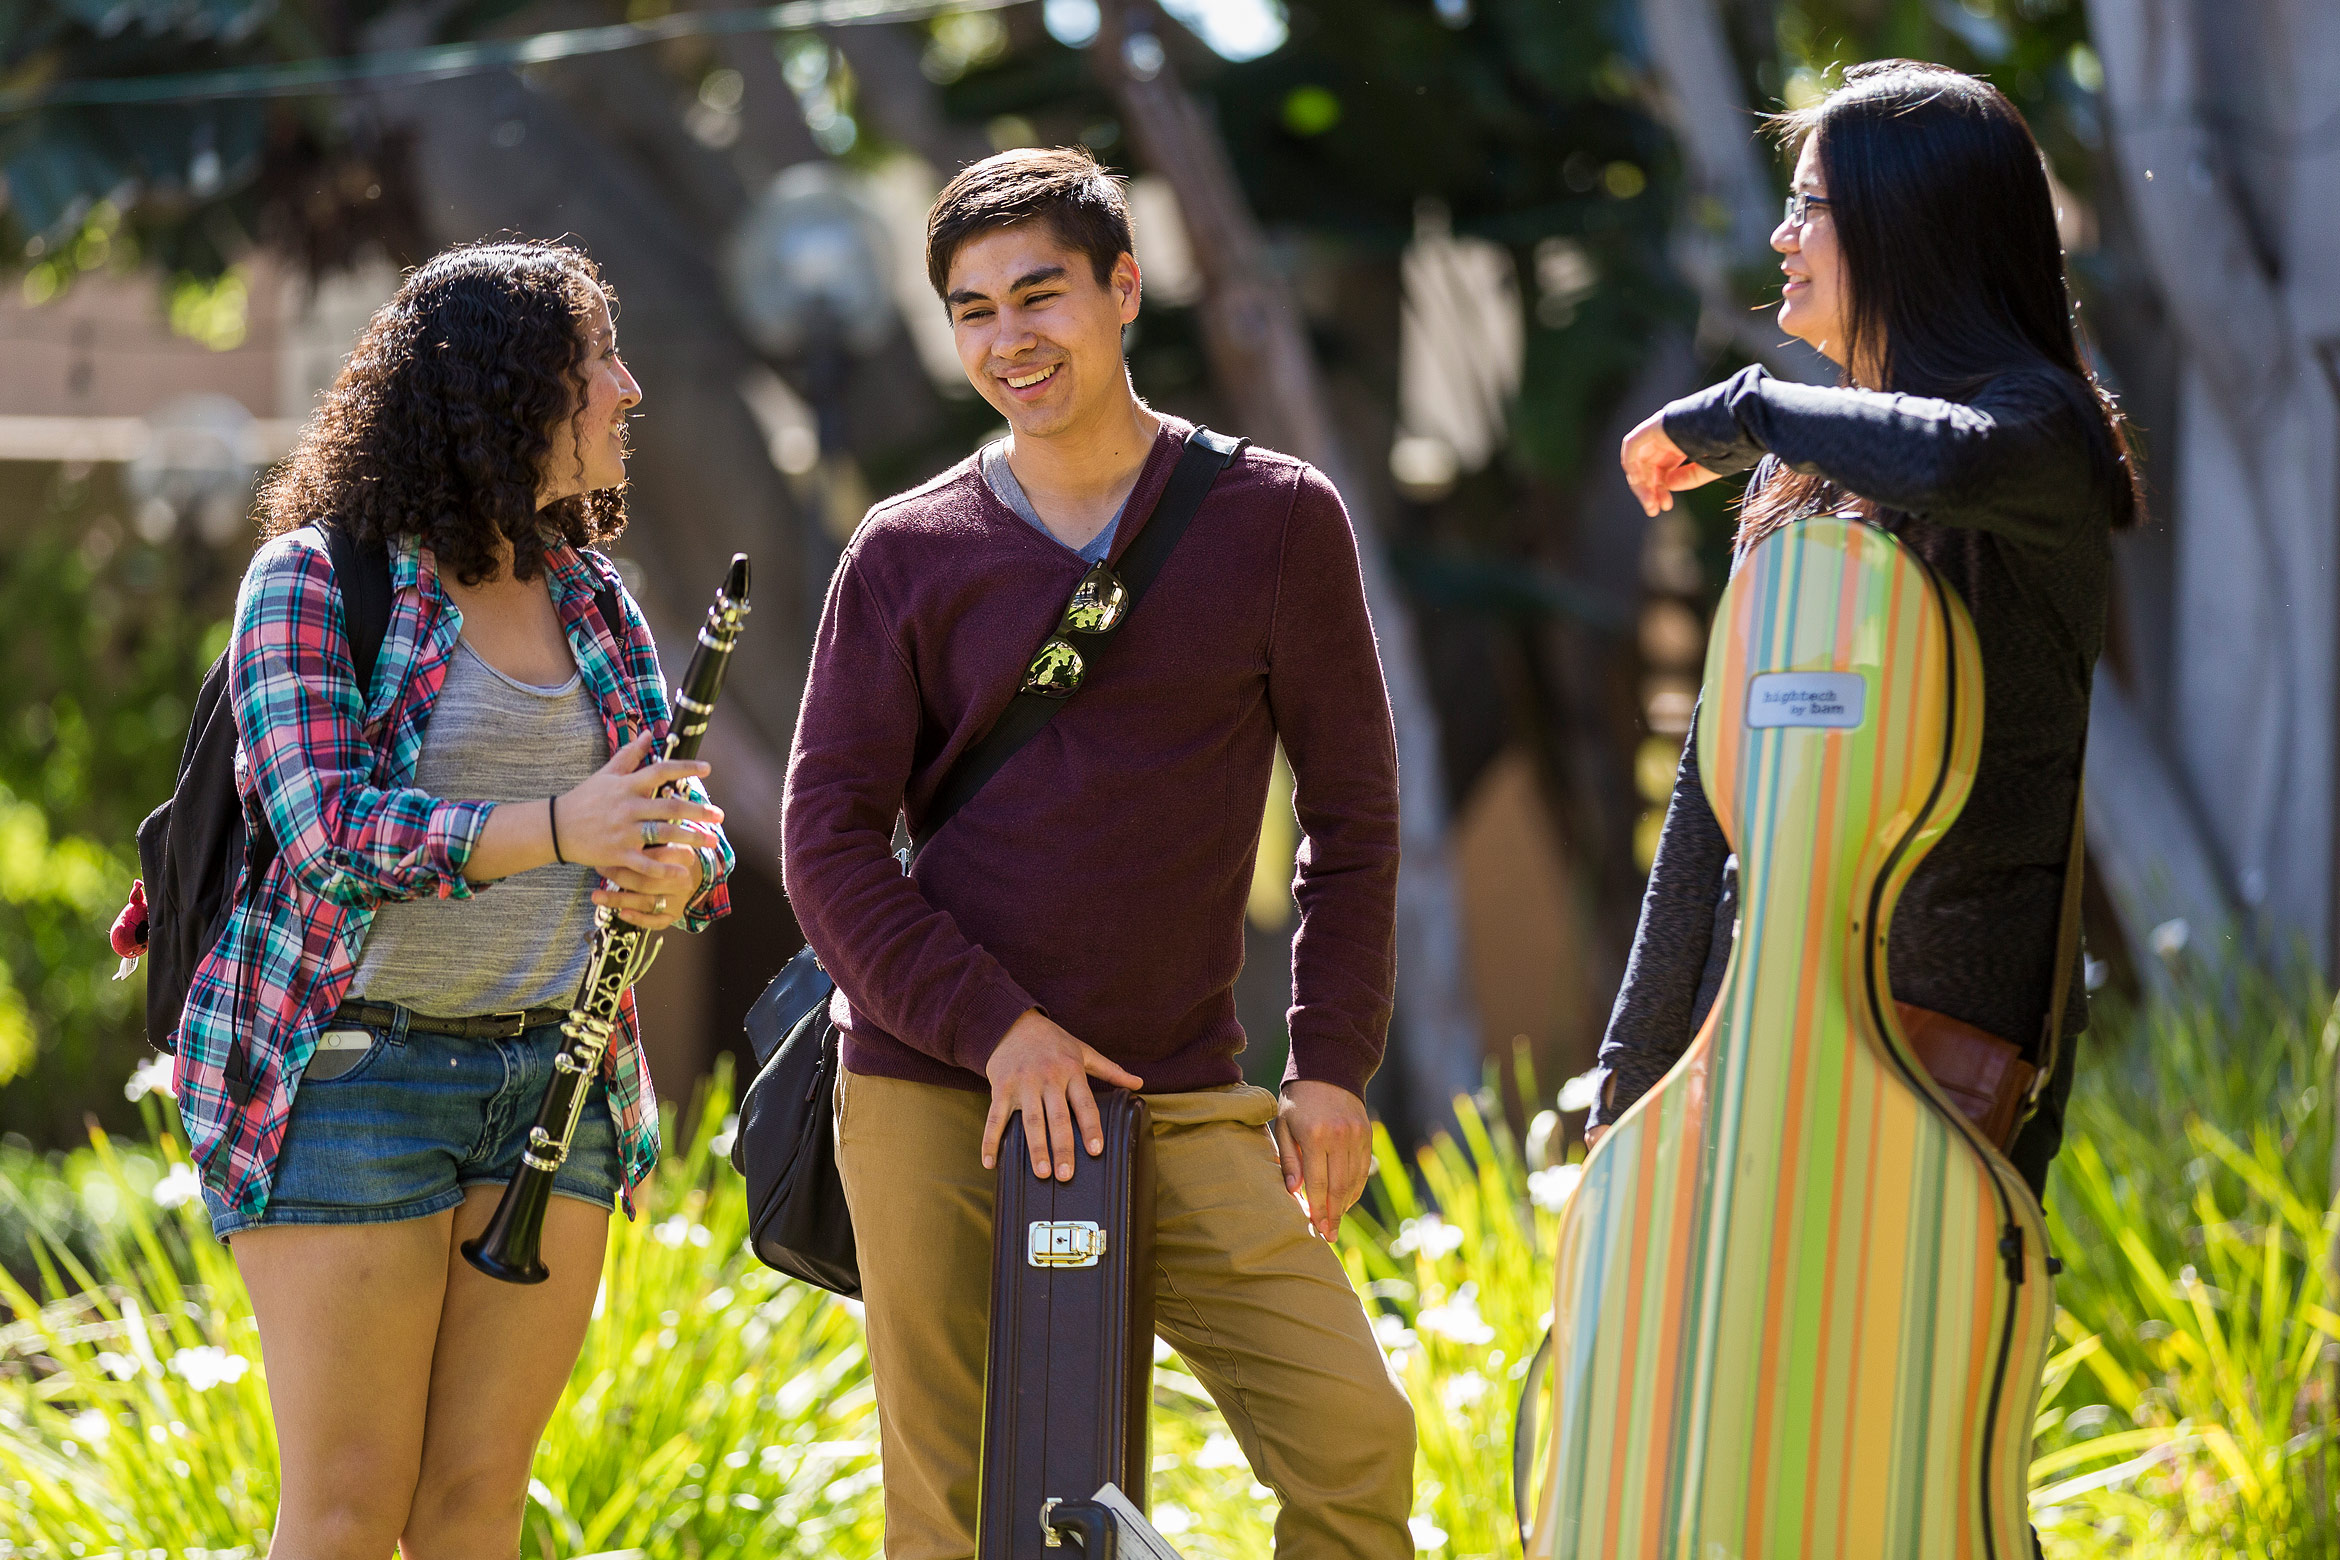 music students at UC Santa Barbara